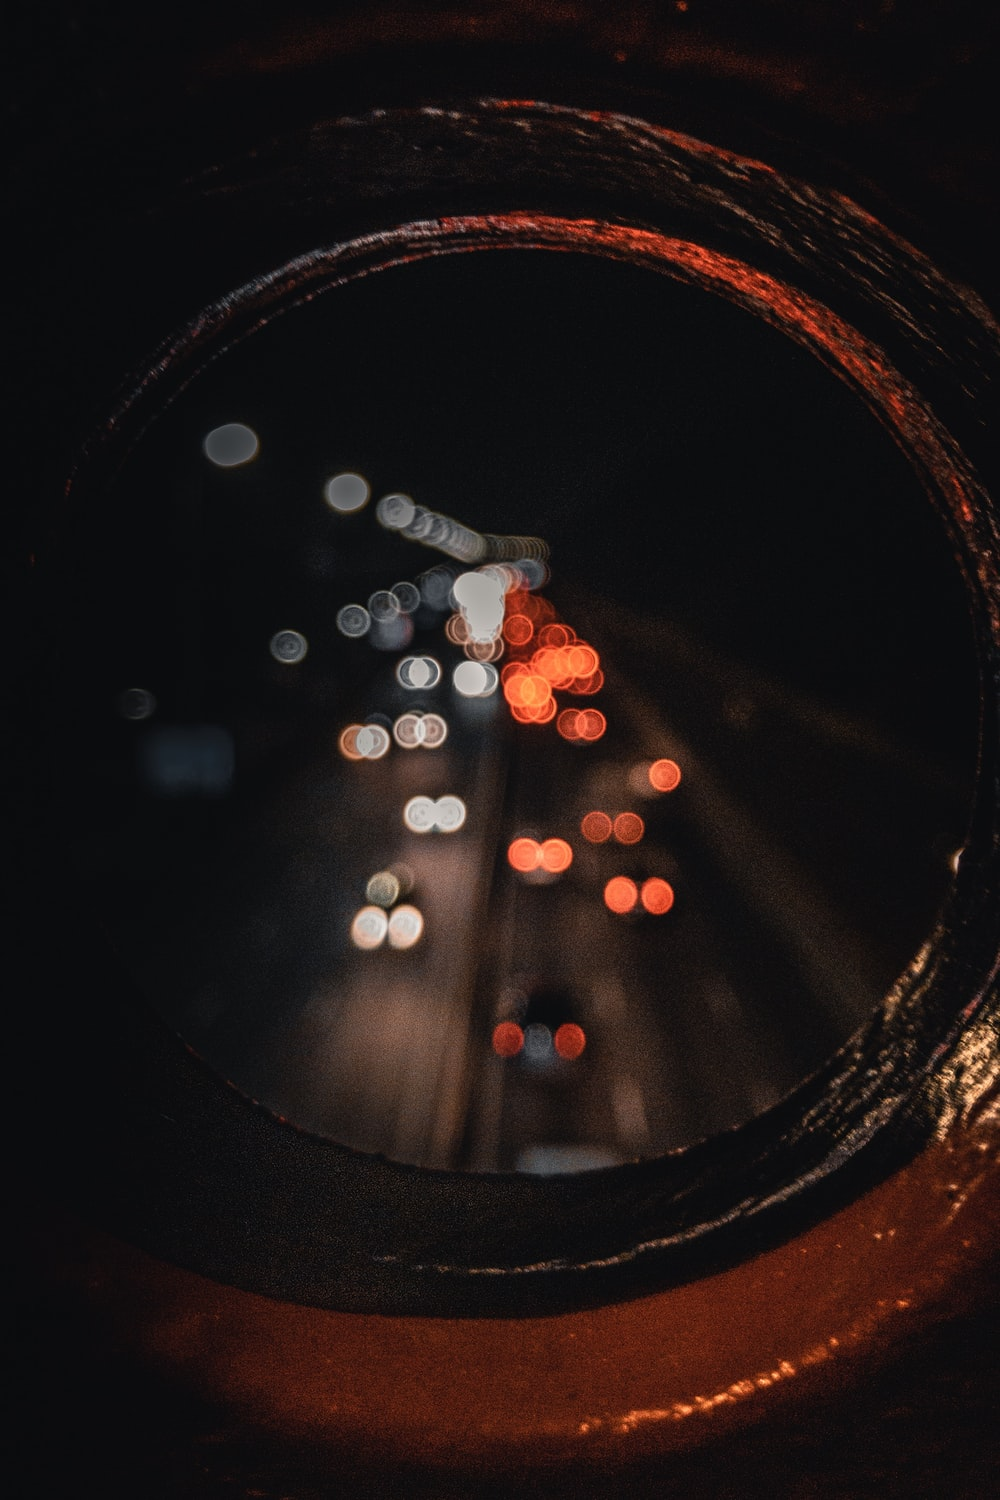 view photo of cars in hole